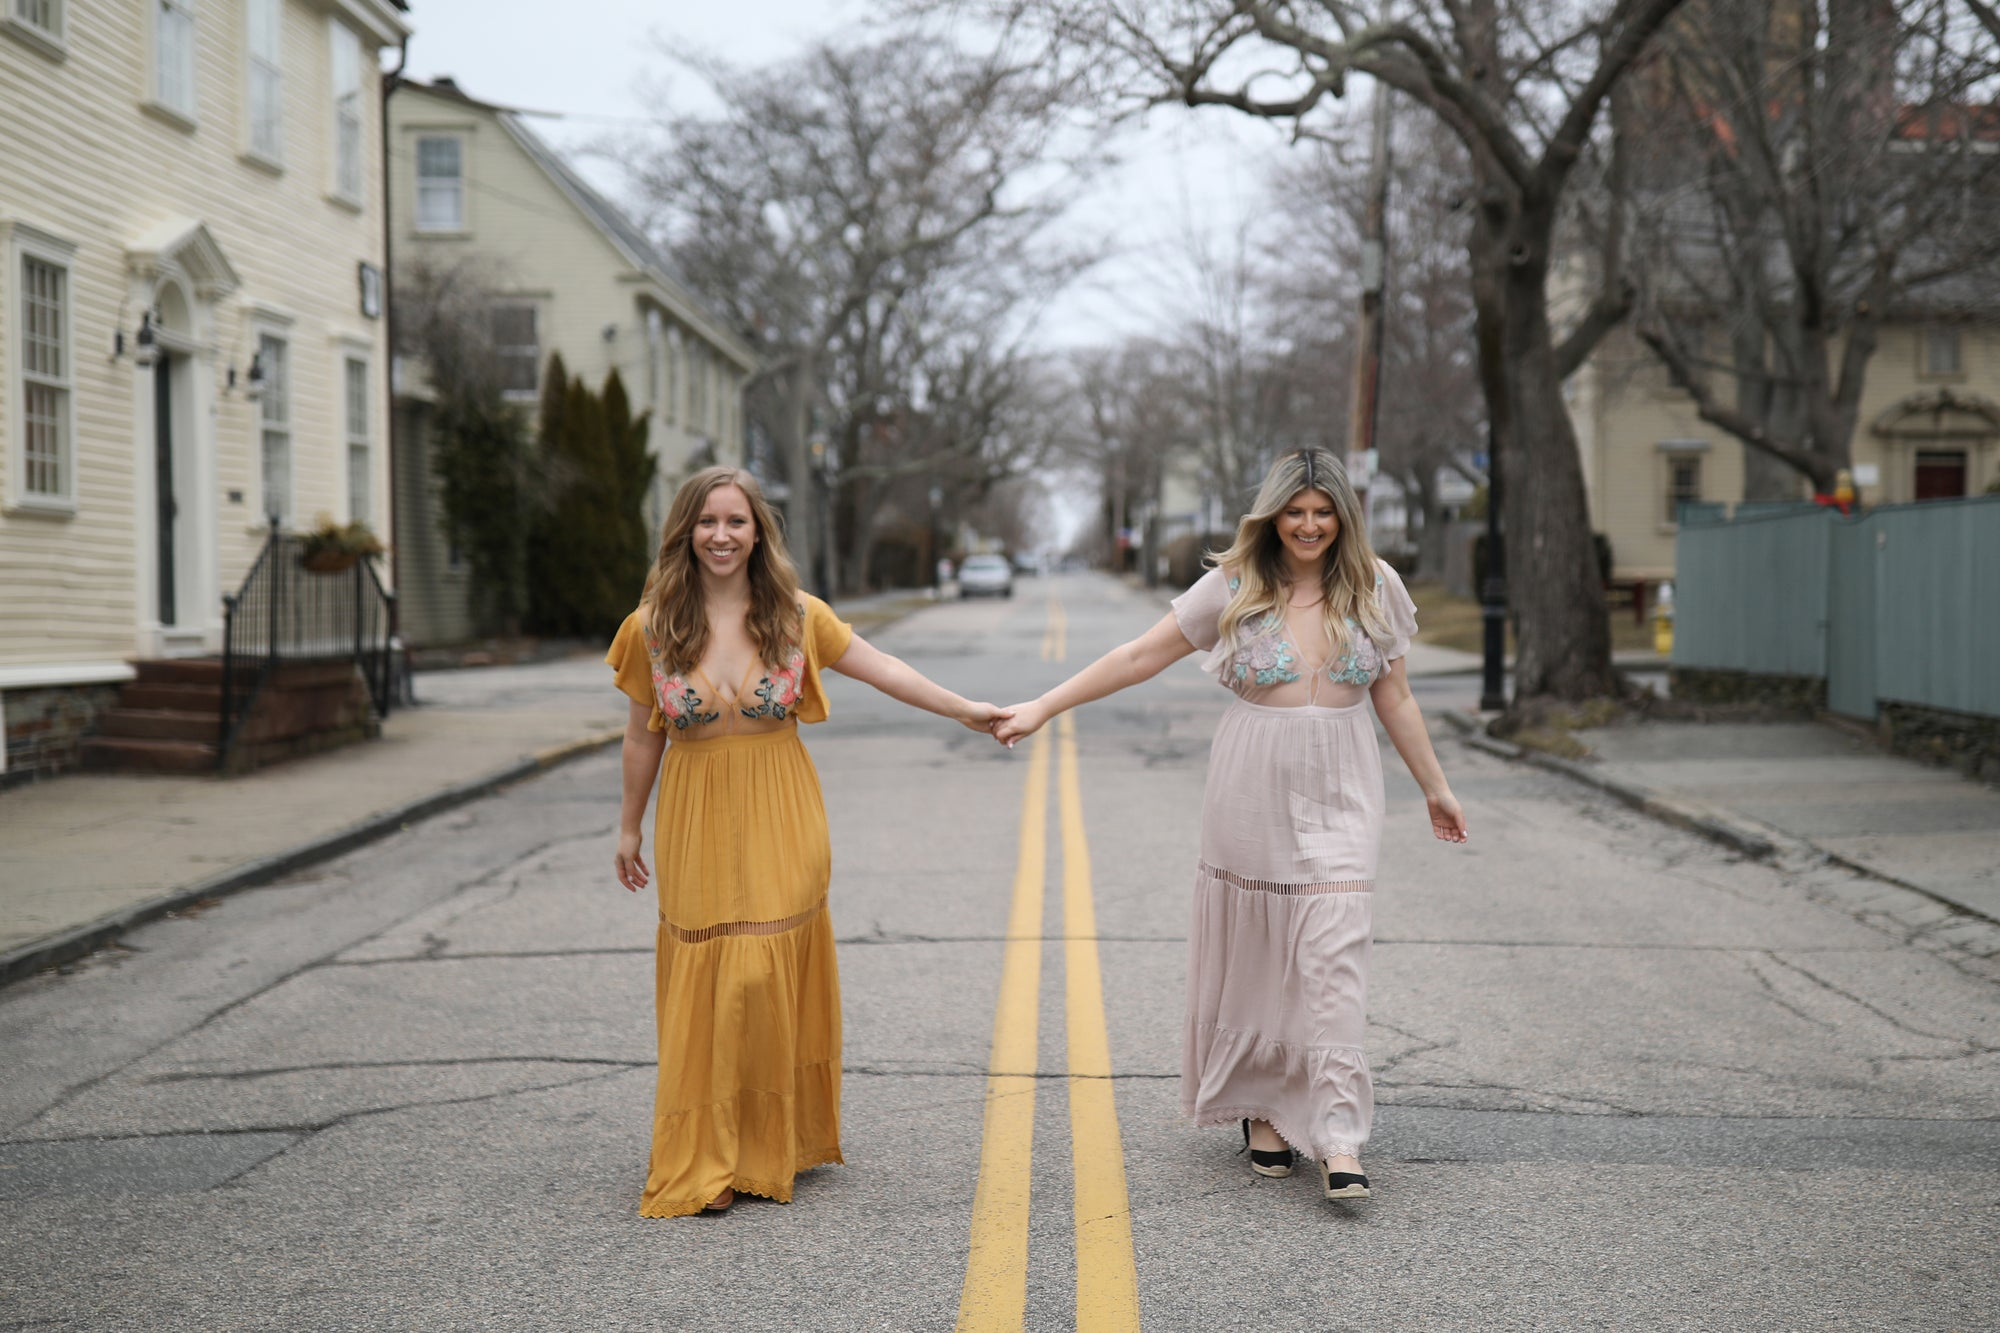 two girls holding hands walking down the street in cleobella amery dresses